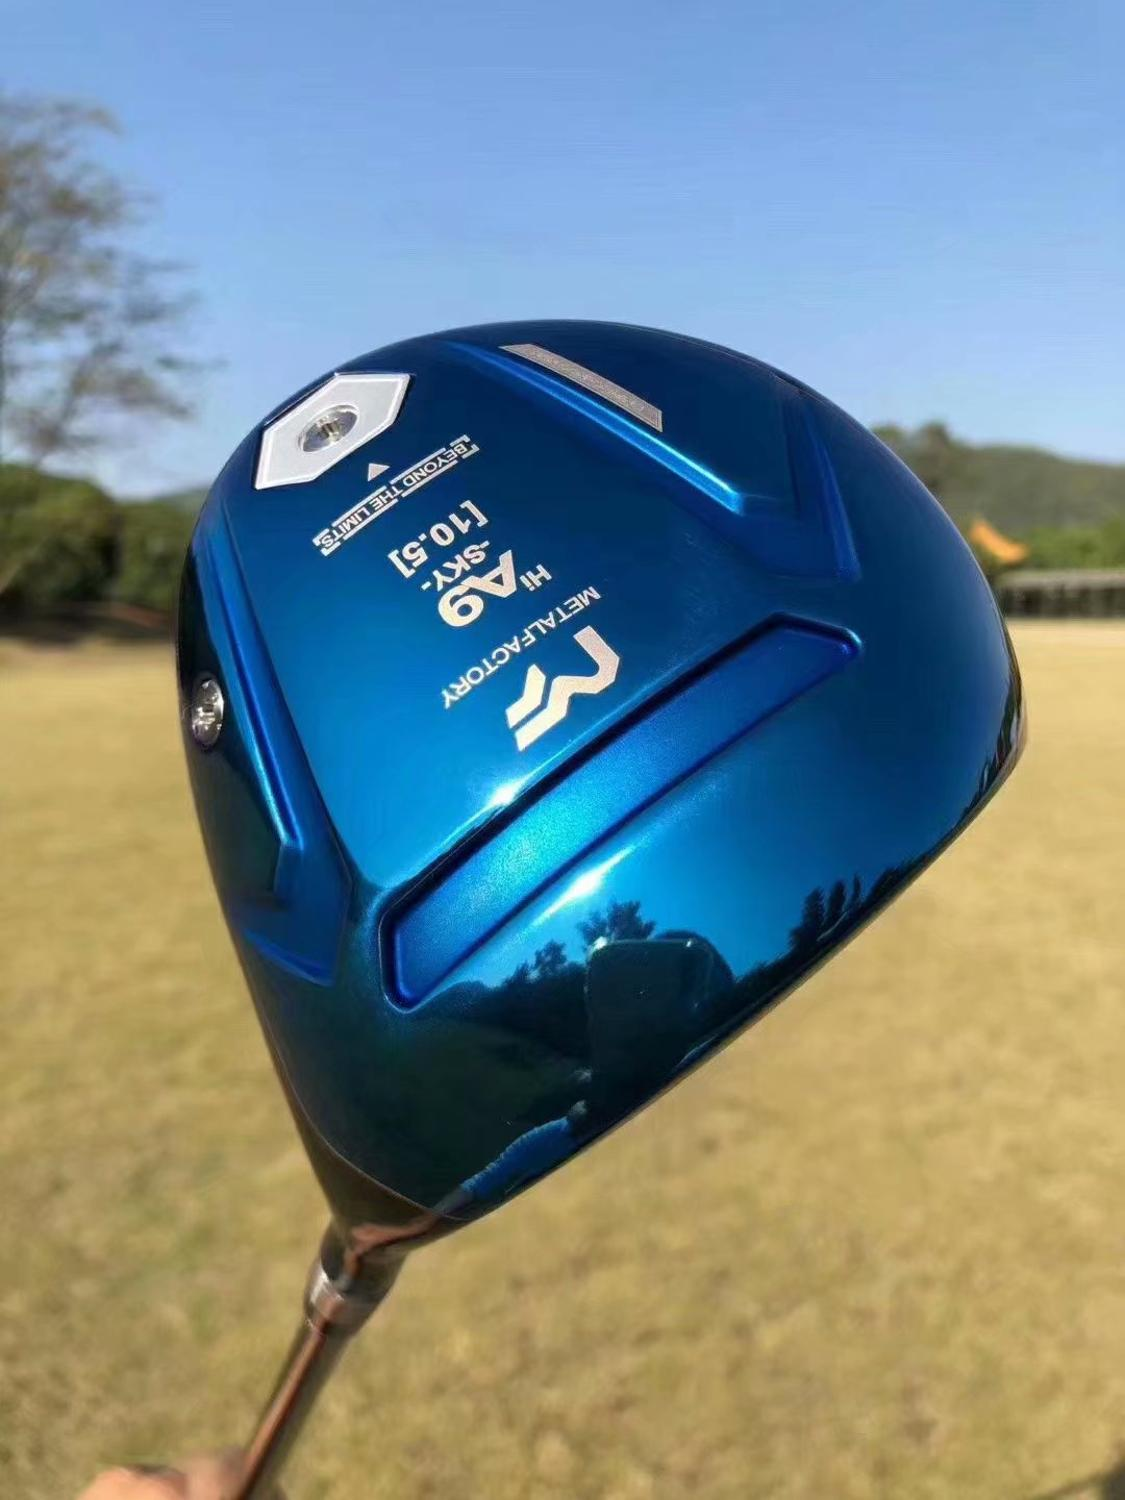 Golf Club New  METALFACTORY A9 Golf Driver Heads 9.5or10.5loft Golf Clubs Heads With Headcover No Drives Shaft Free Shipping